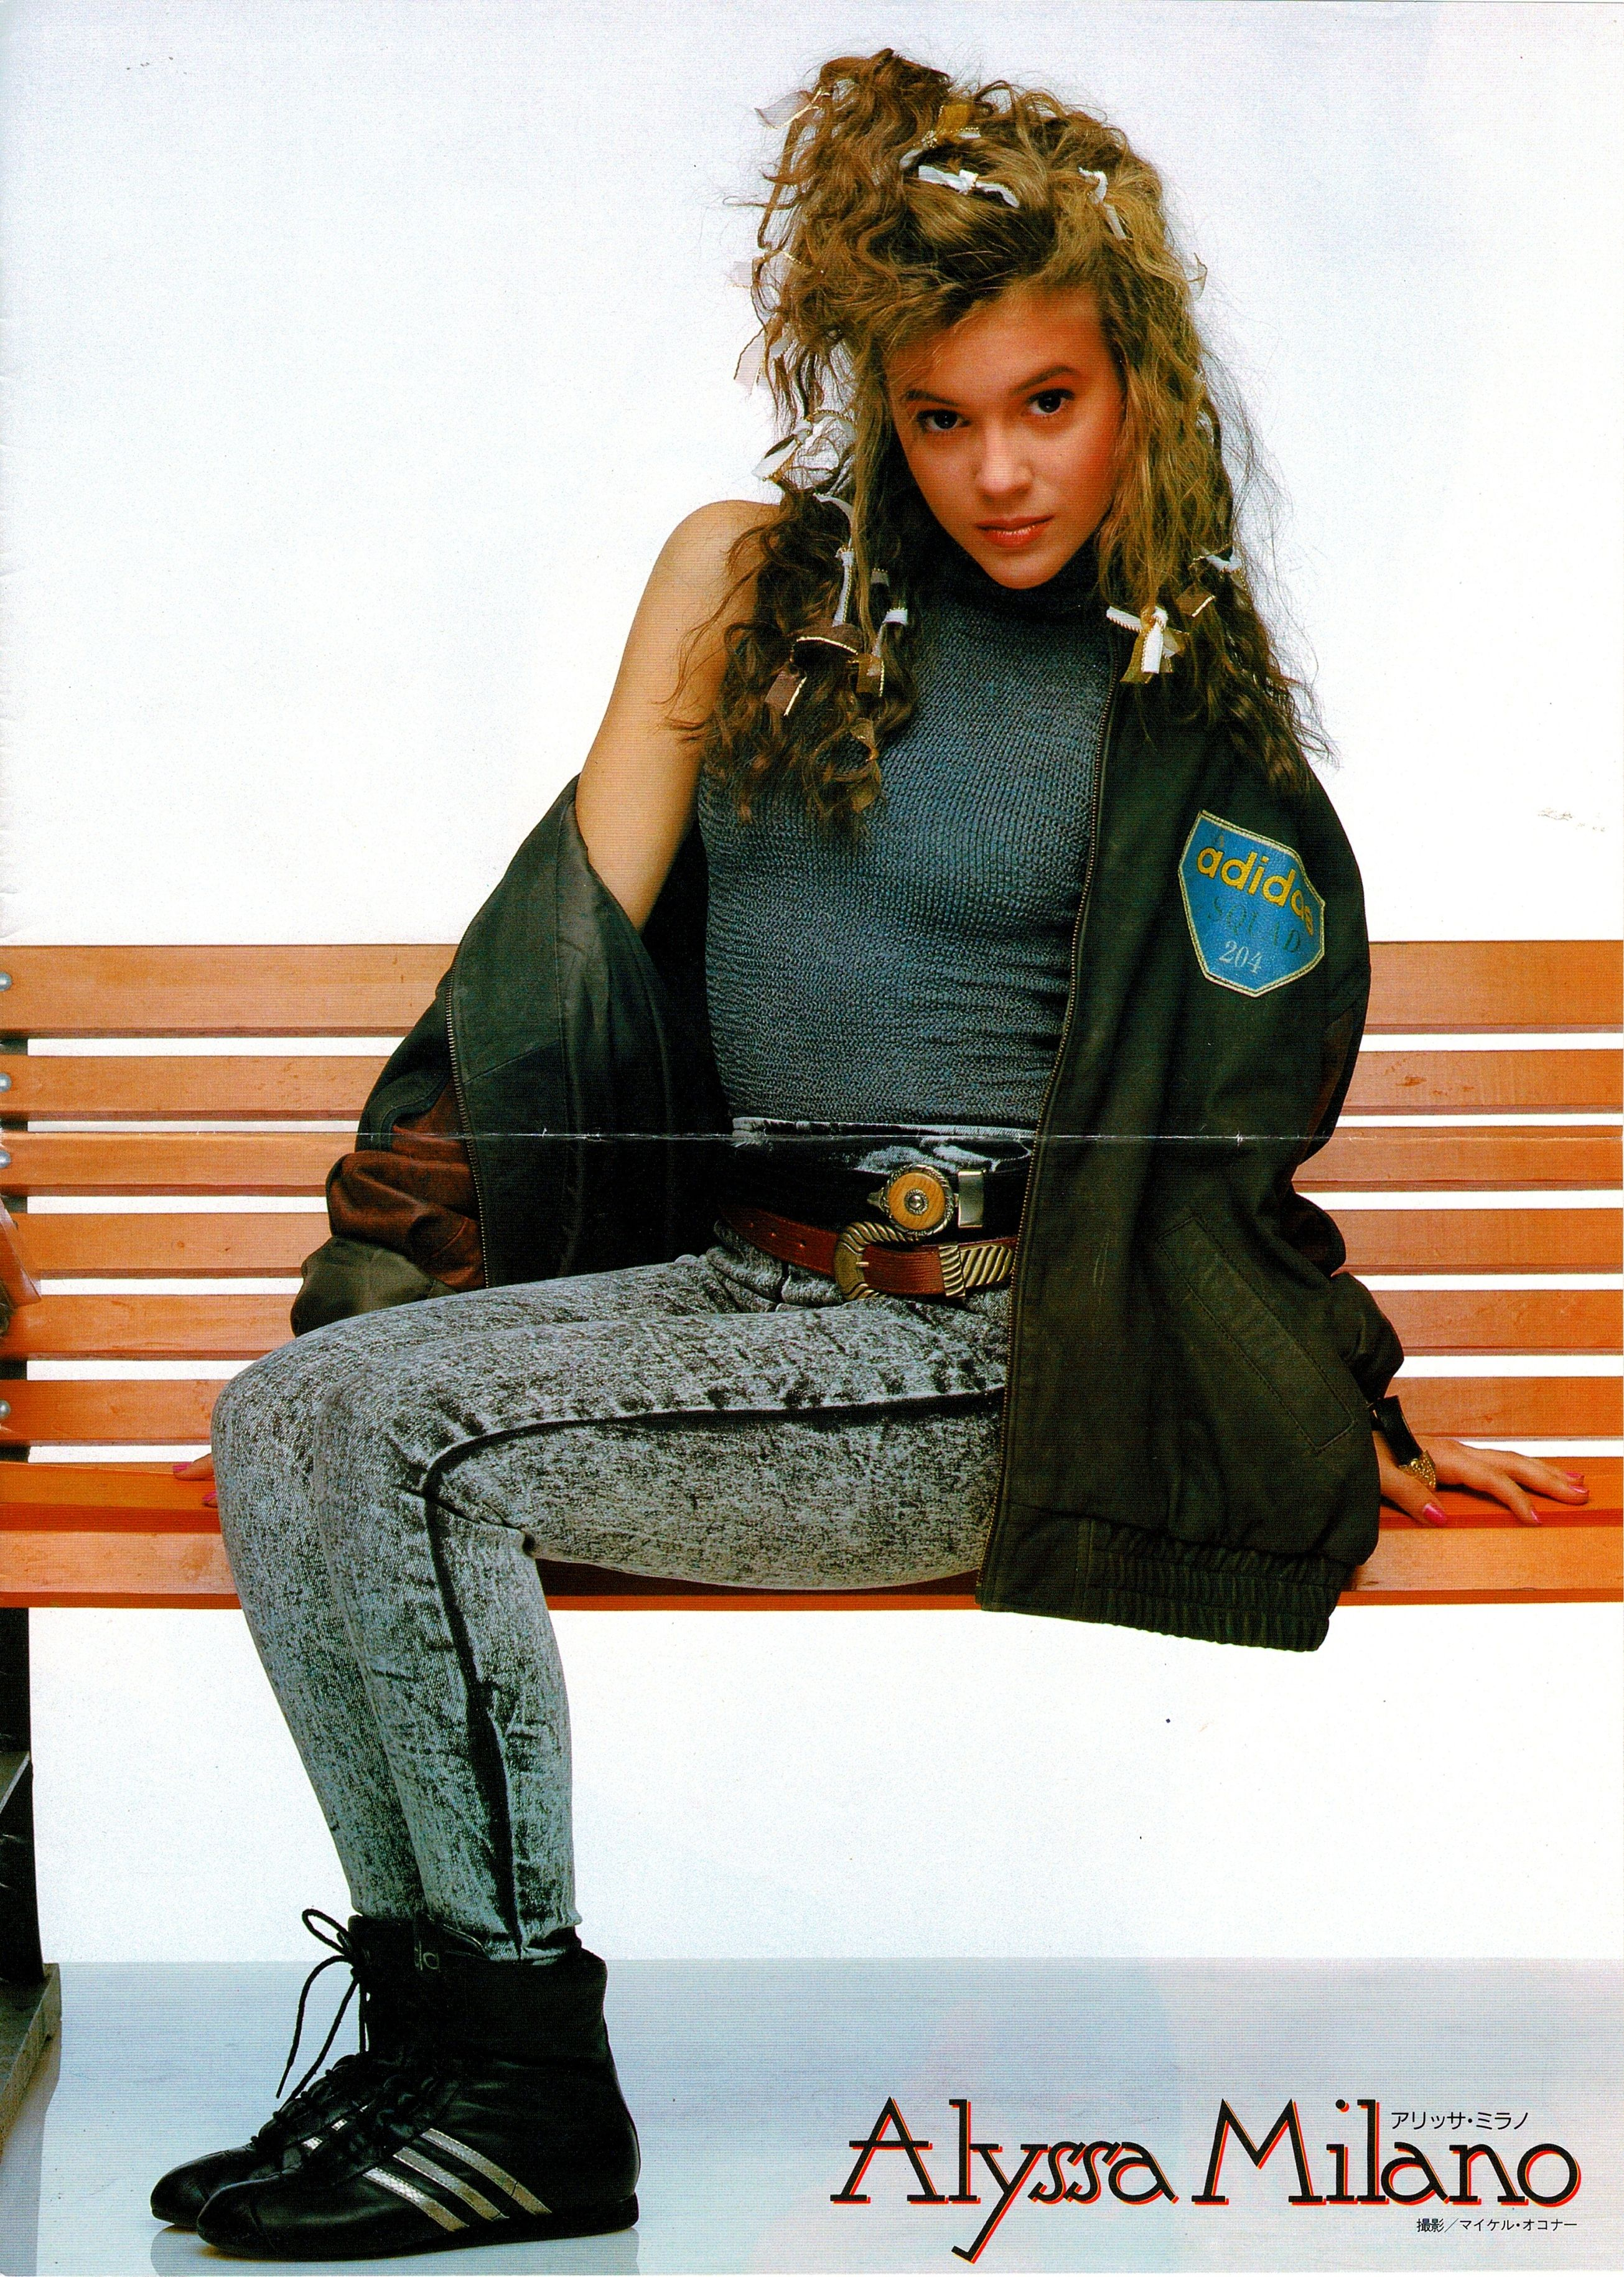 Another Shot Of Alyssa Milano Wearing A Black Leather Adidas